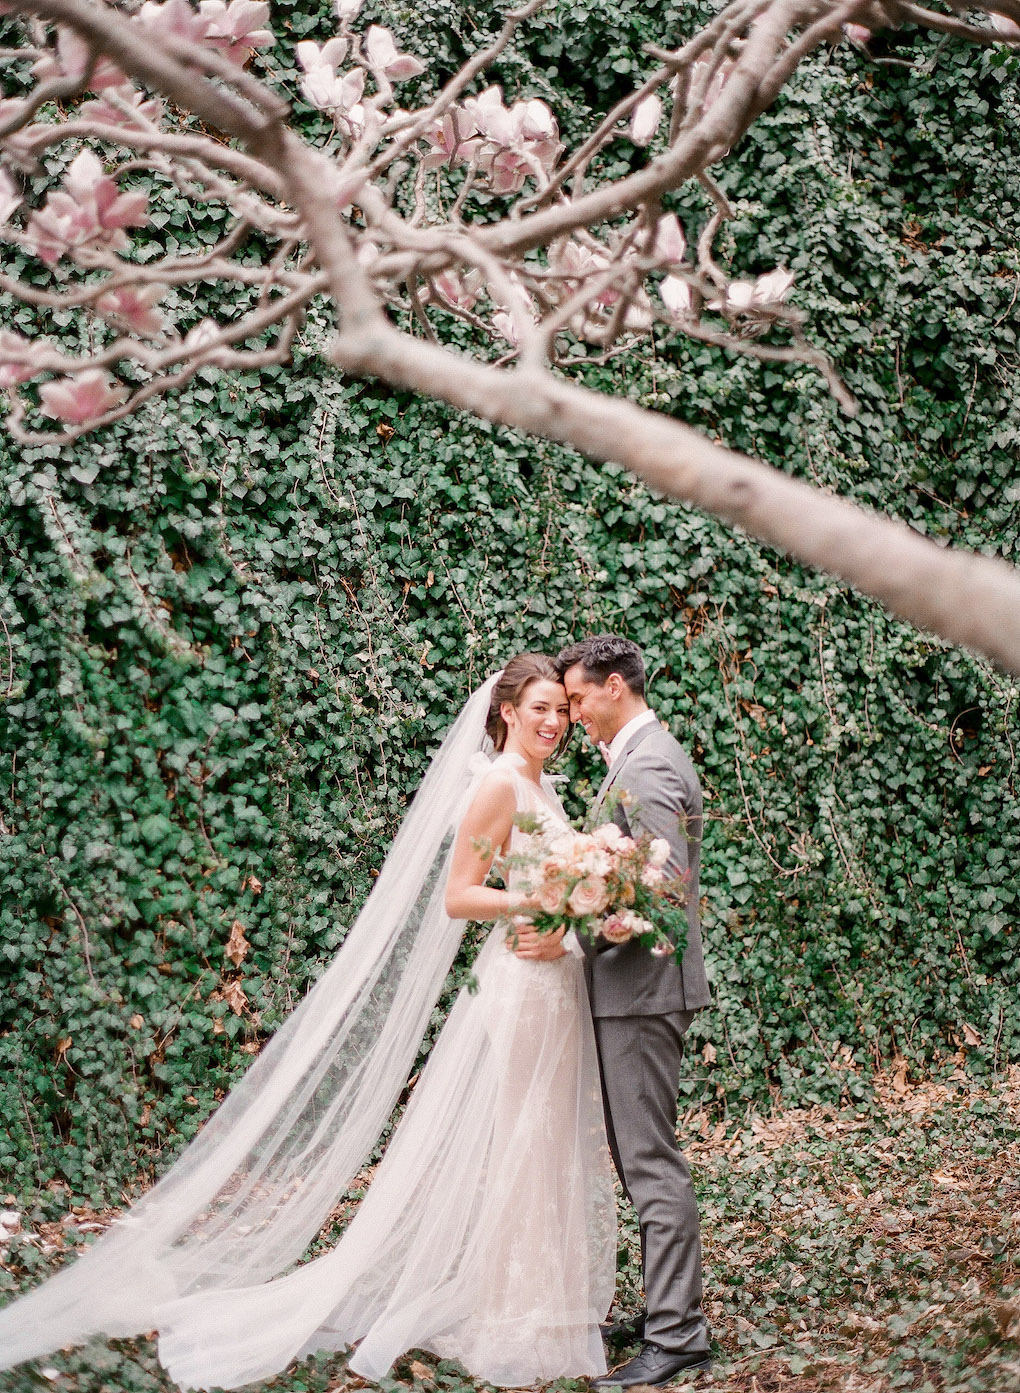 Romantic Wedding Photos in Downtown Pittsburgh:Soft and Subtle Palettes of Spring Blossoms | Editorial Shoot at The Renaissance Pittsburgh by Exhale Events. See more inspiration at exhale-events.com!